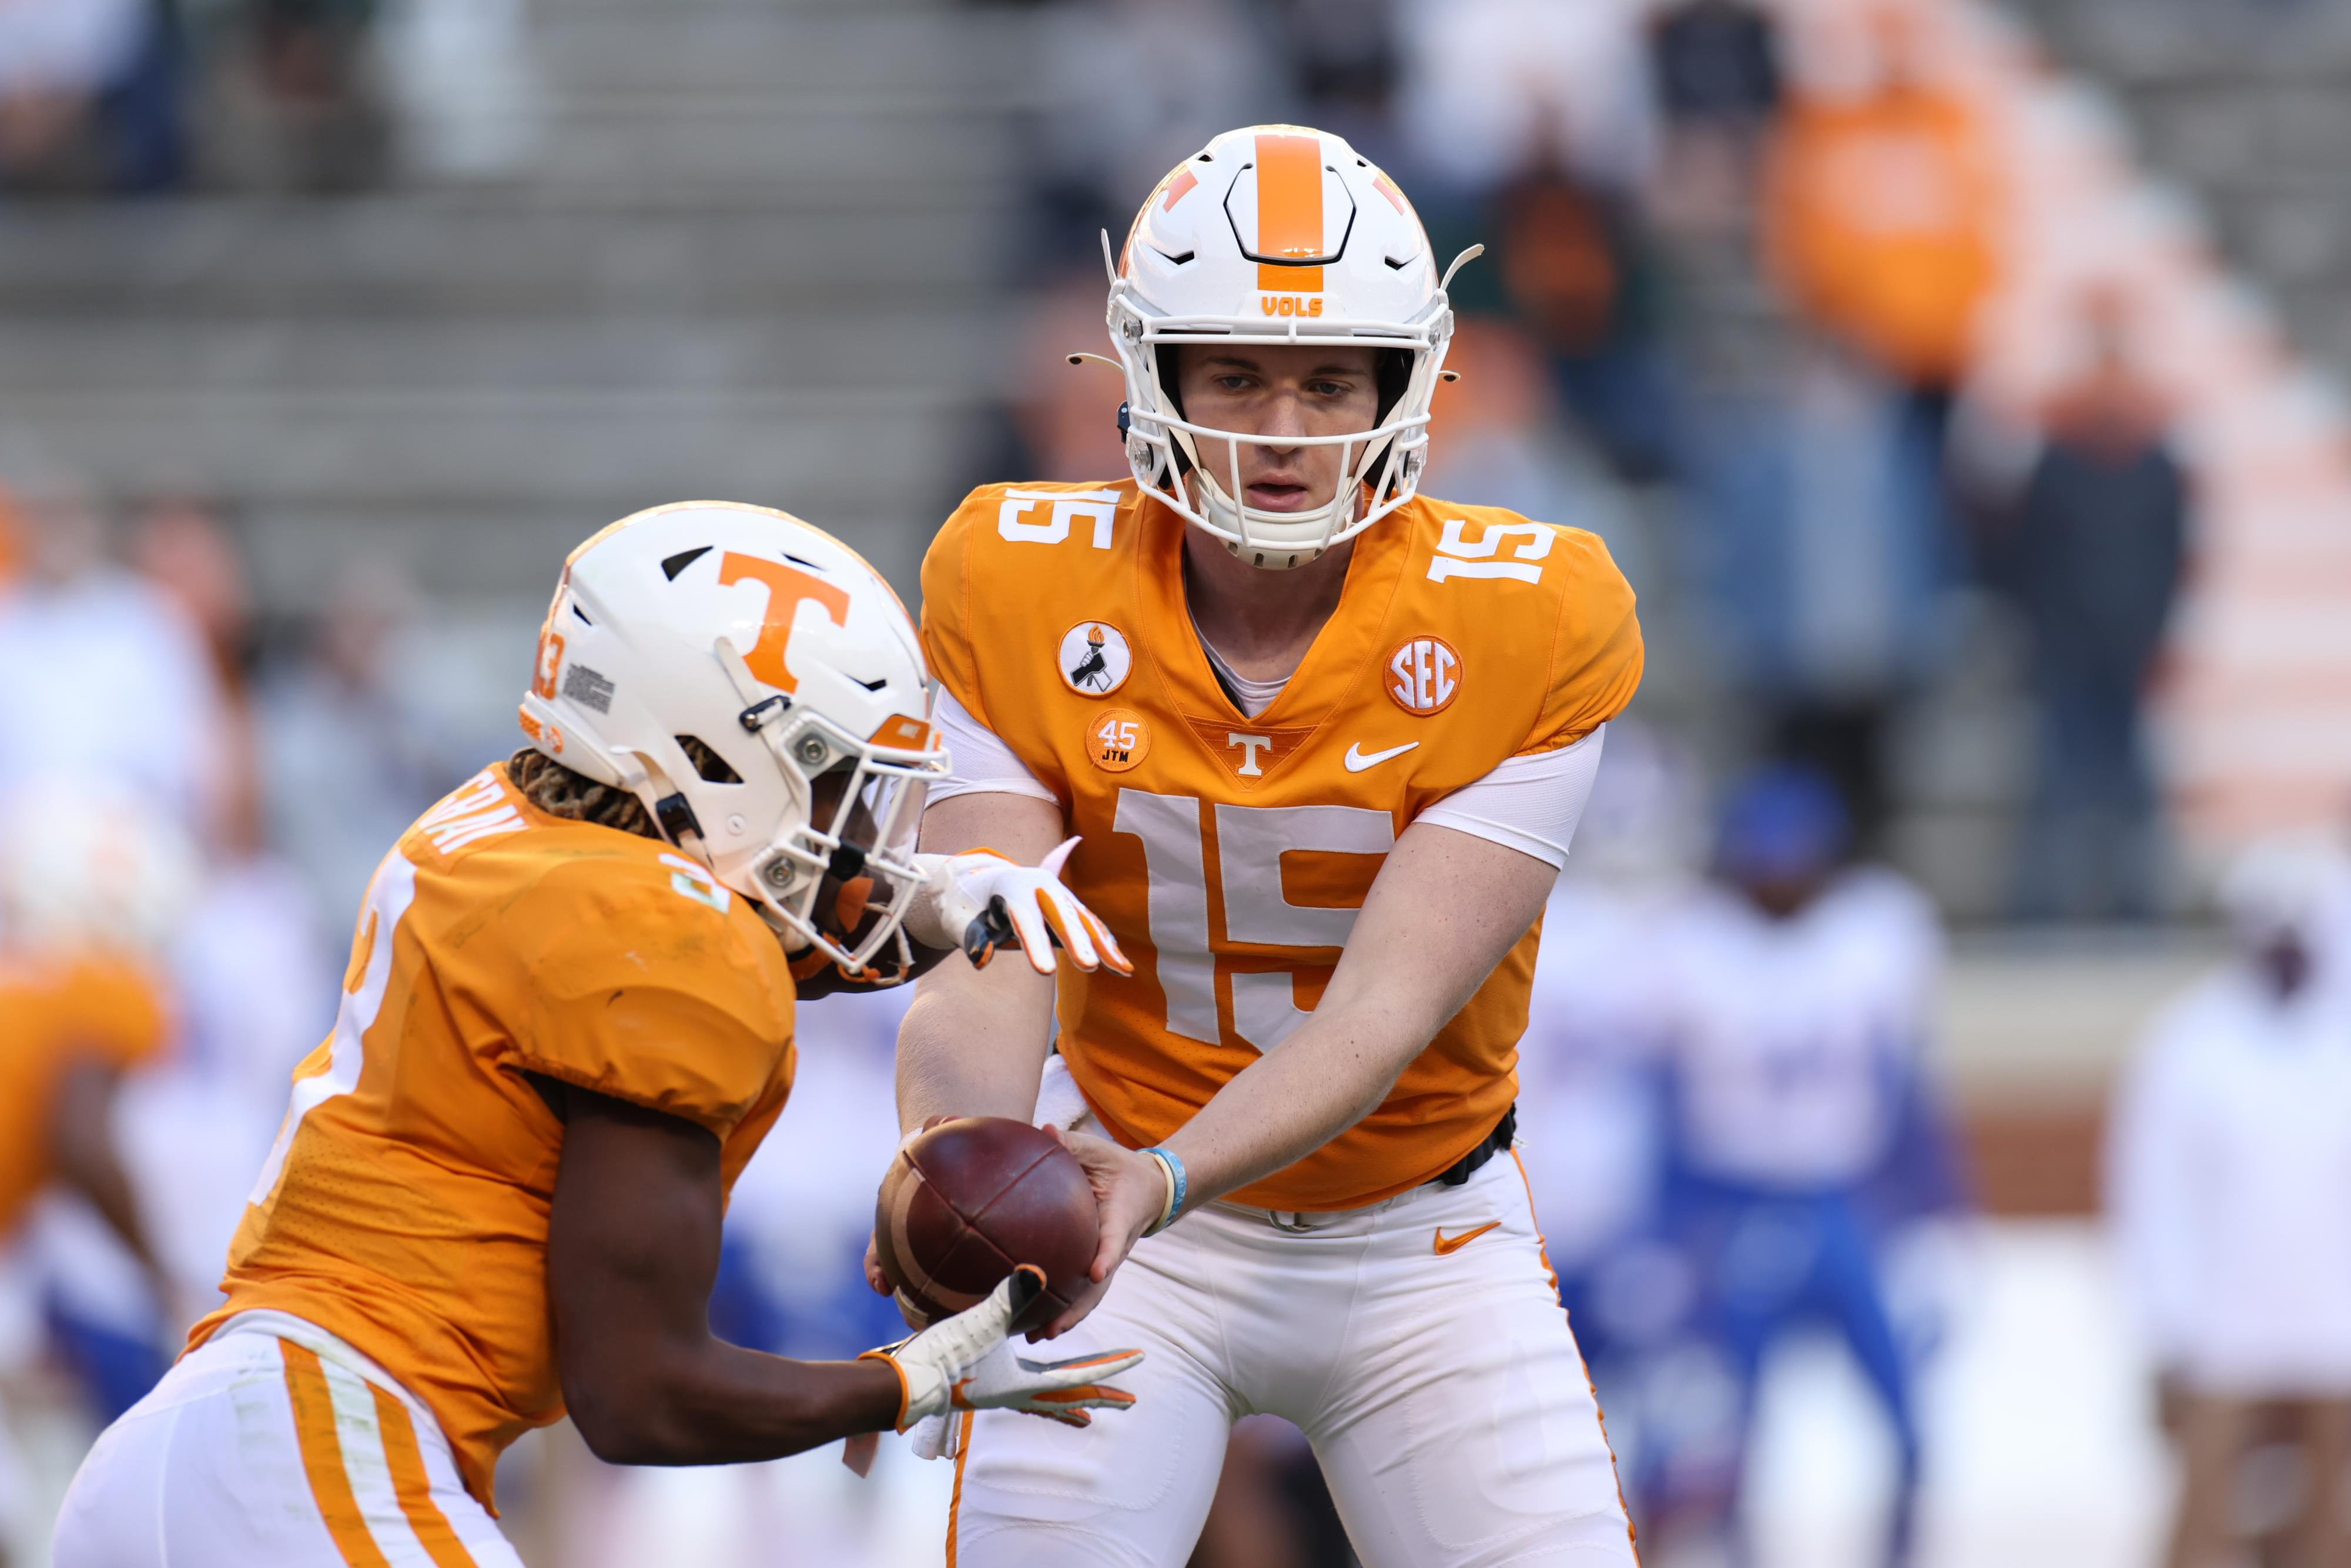 PHOTO GALLERY: Florida at Tennessee